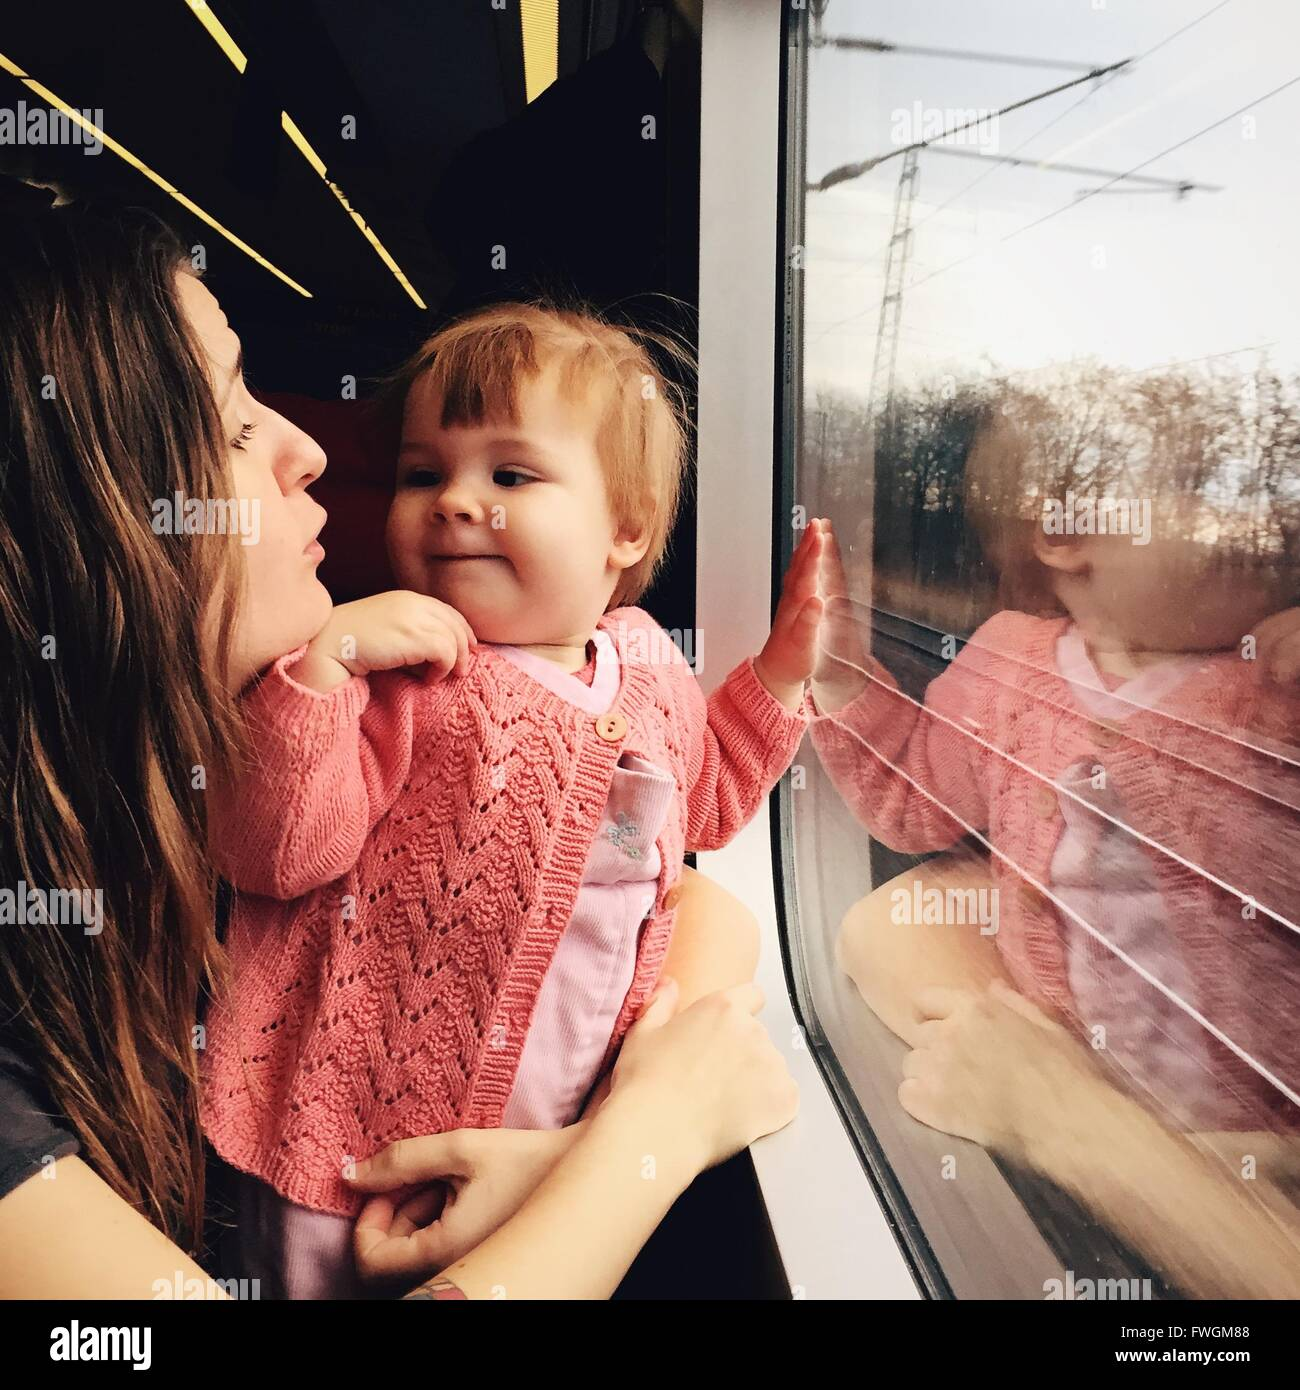 Baby With Mother In Train - Stock Image